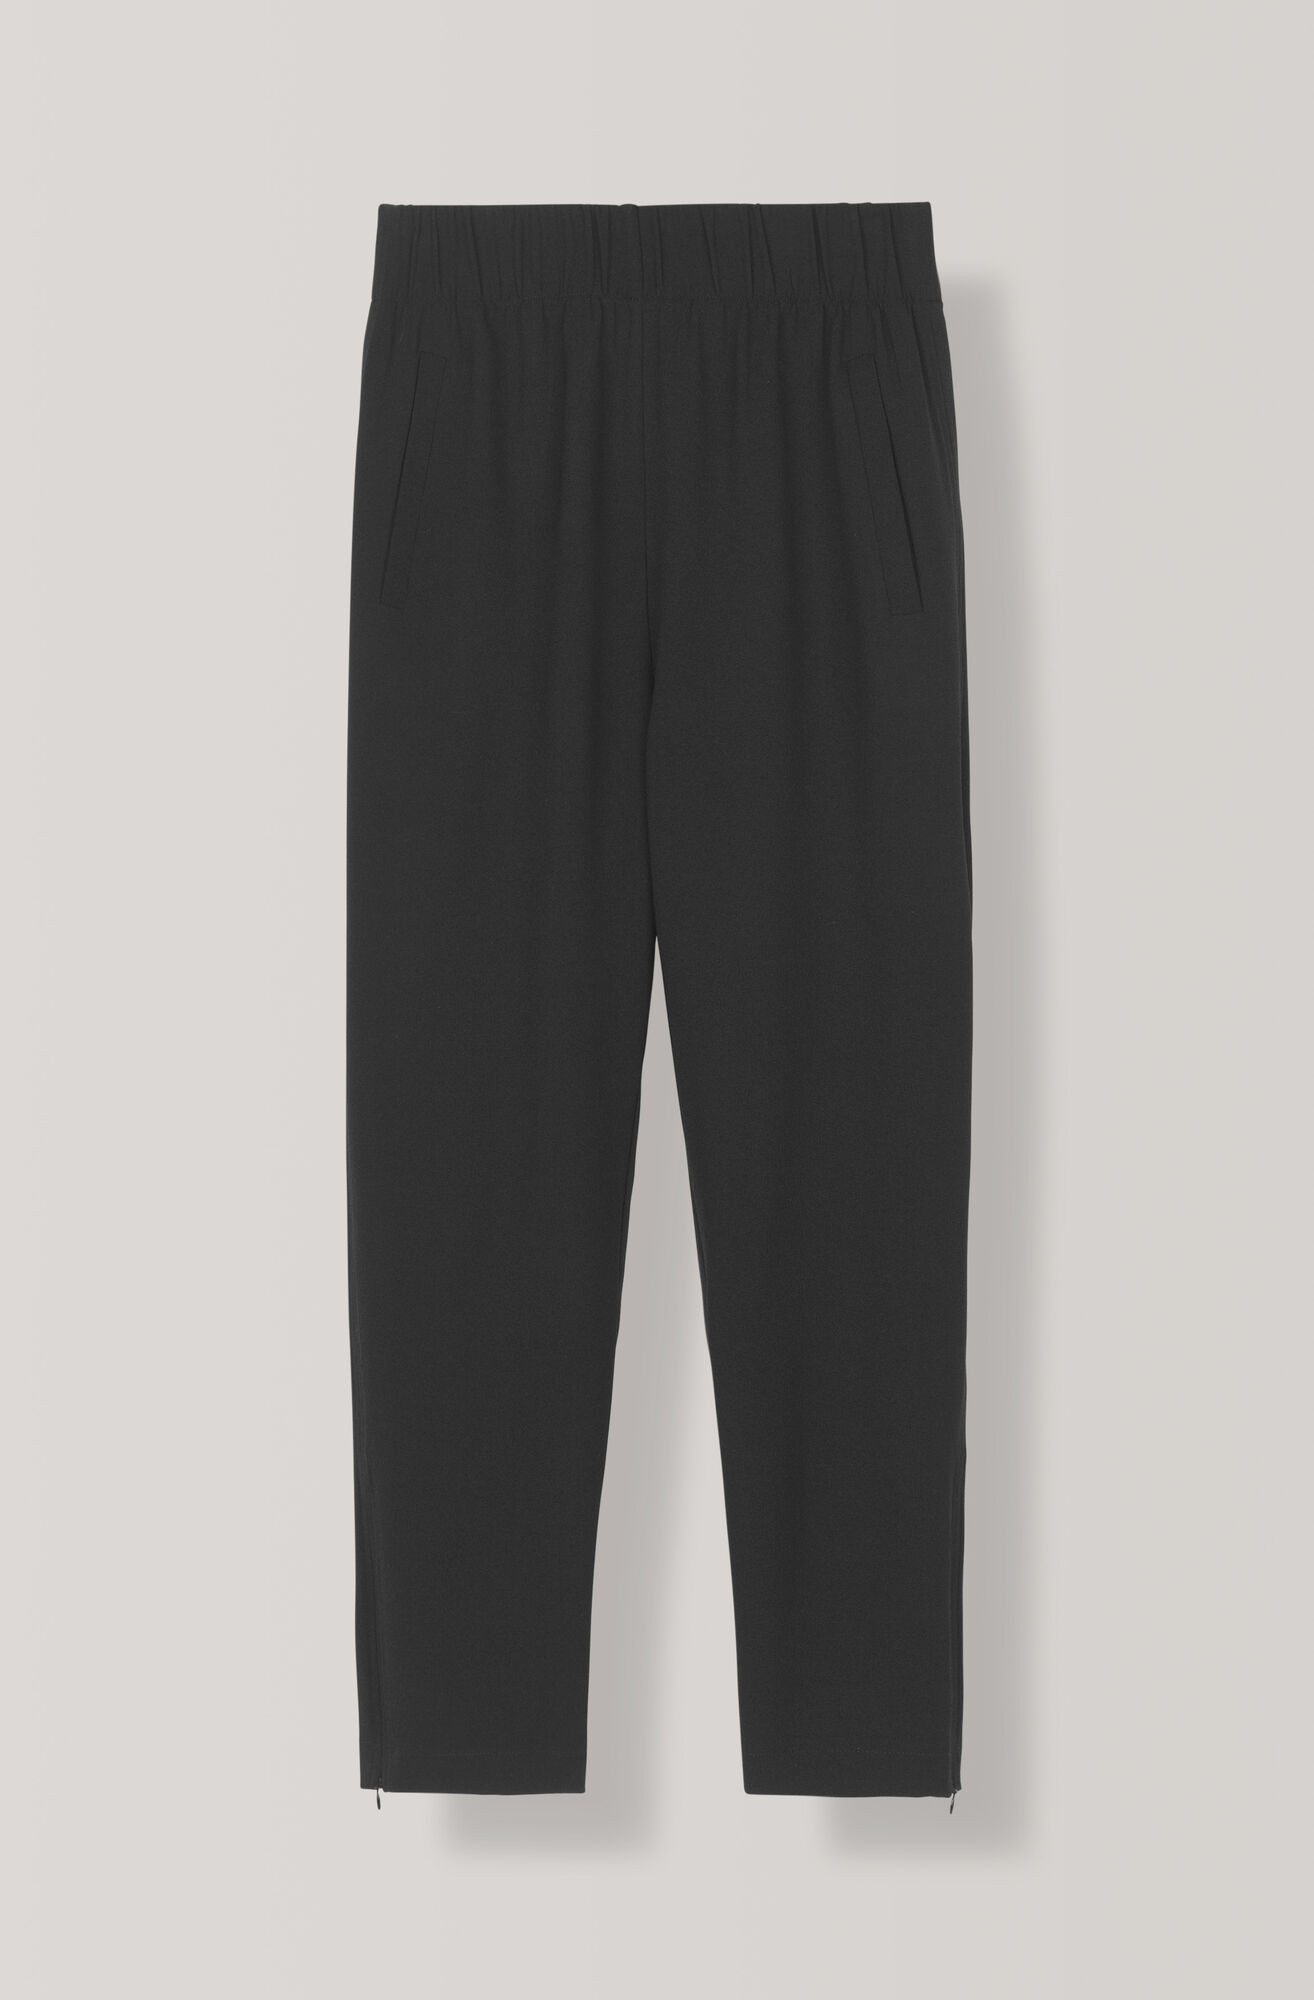 Heavy Crepe Pants, Black, hi-res